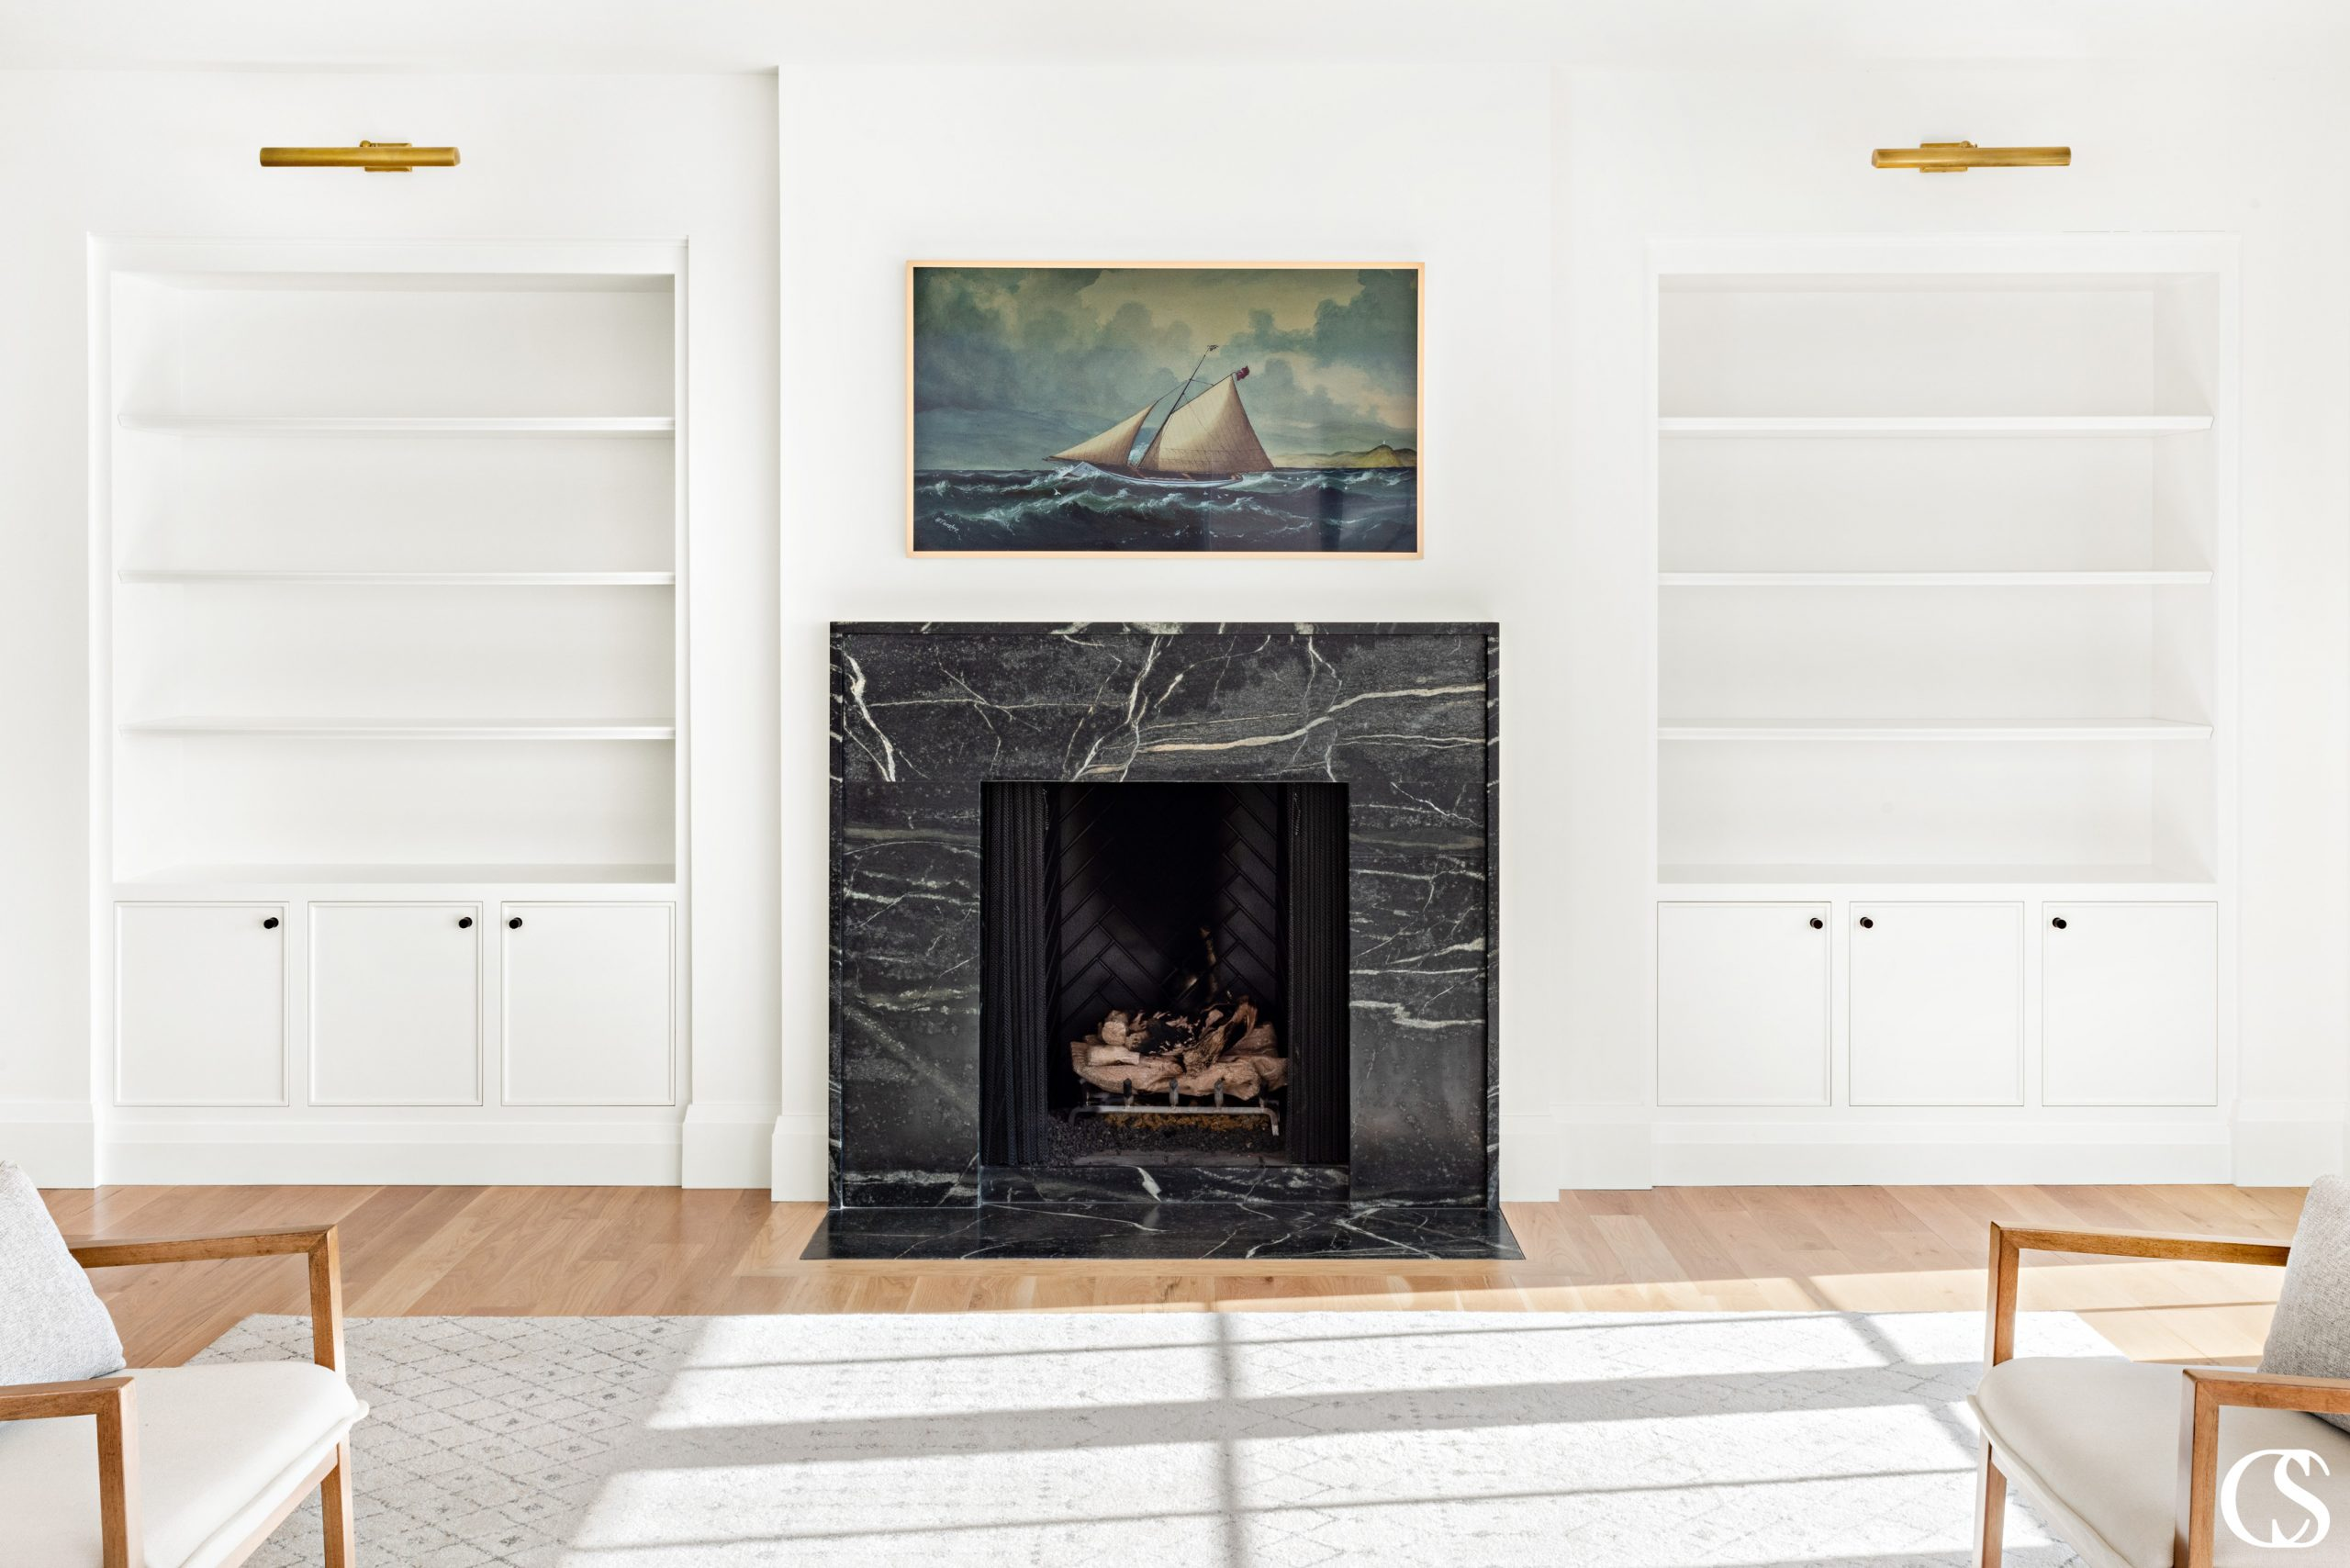 Designing custom cabinets for the home often means making them feel like they belong, like they've always been part of the house plans—like these sleek built-in cabinets flanking the marble fireplace.